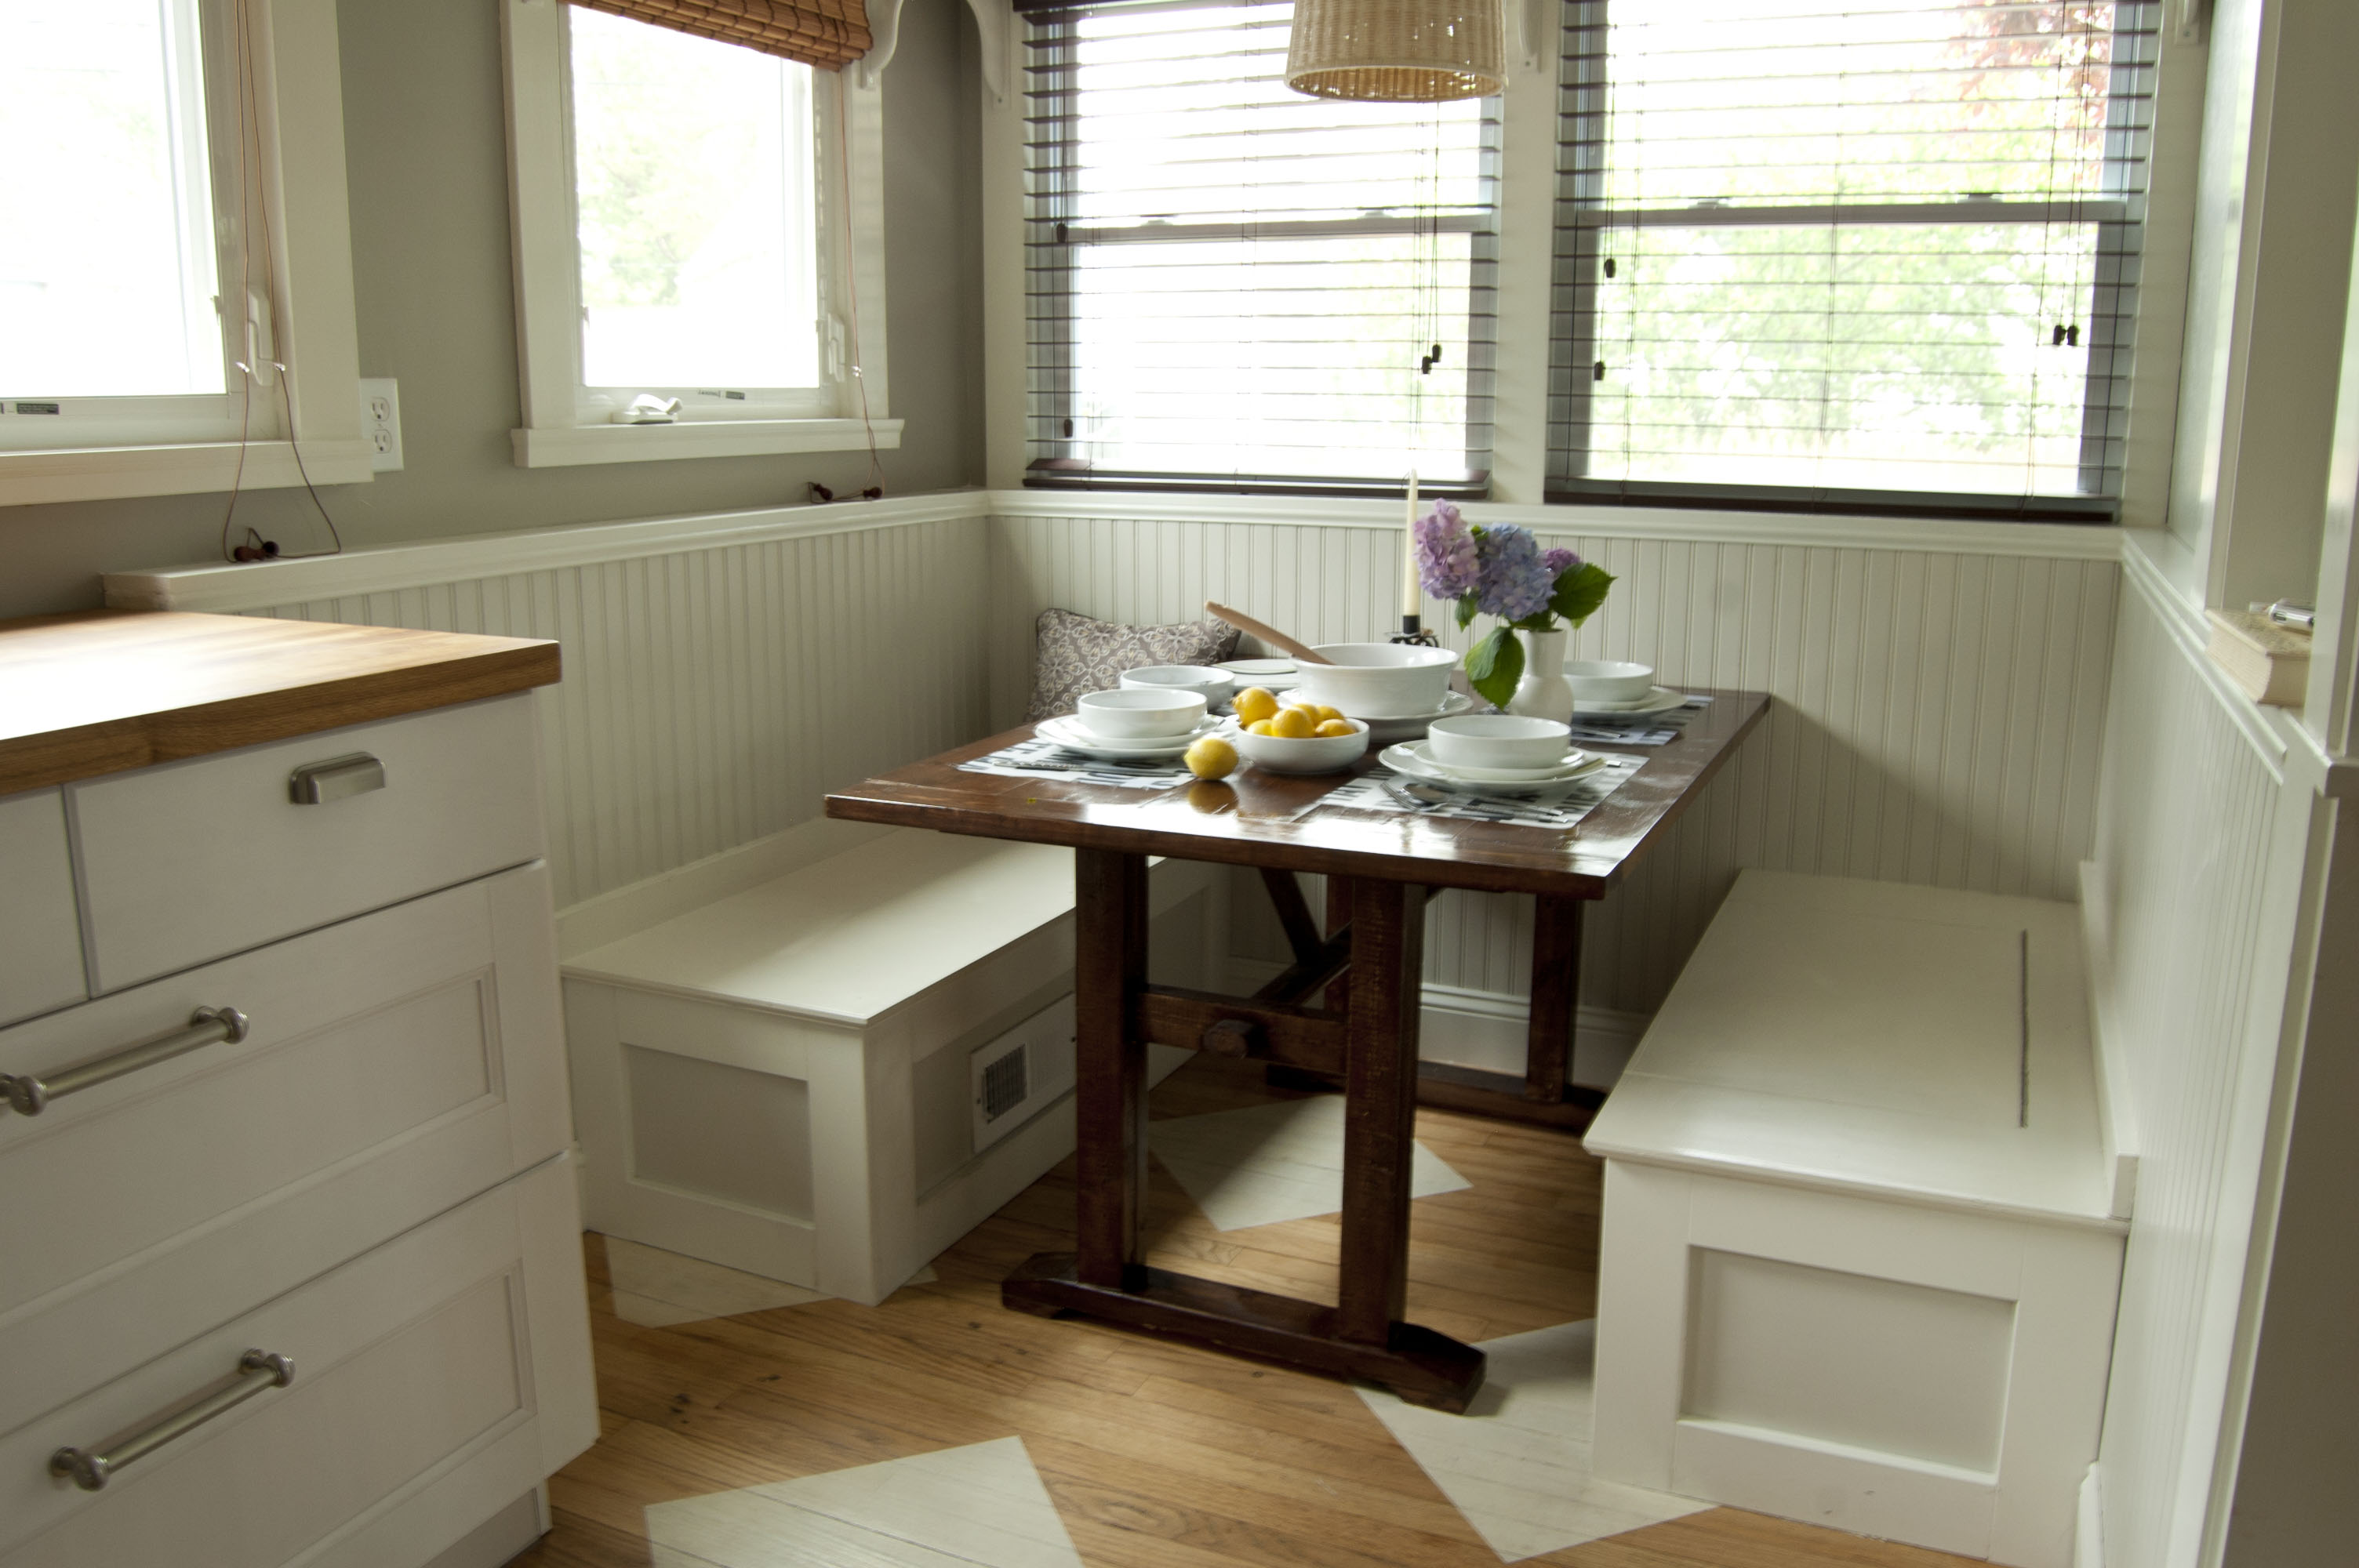 Diy banquette jessepeckwrites - Built in banquette dining sets ...